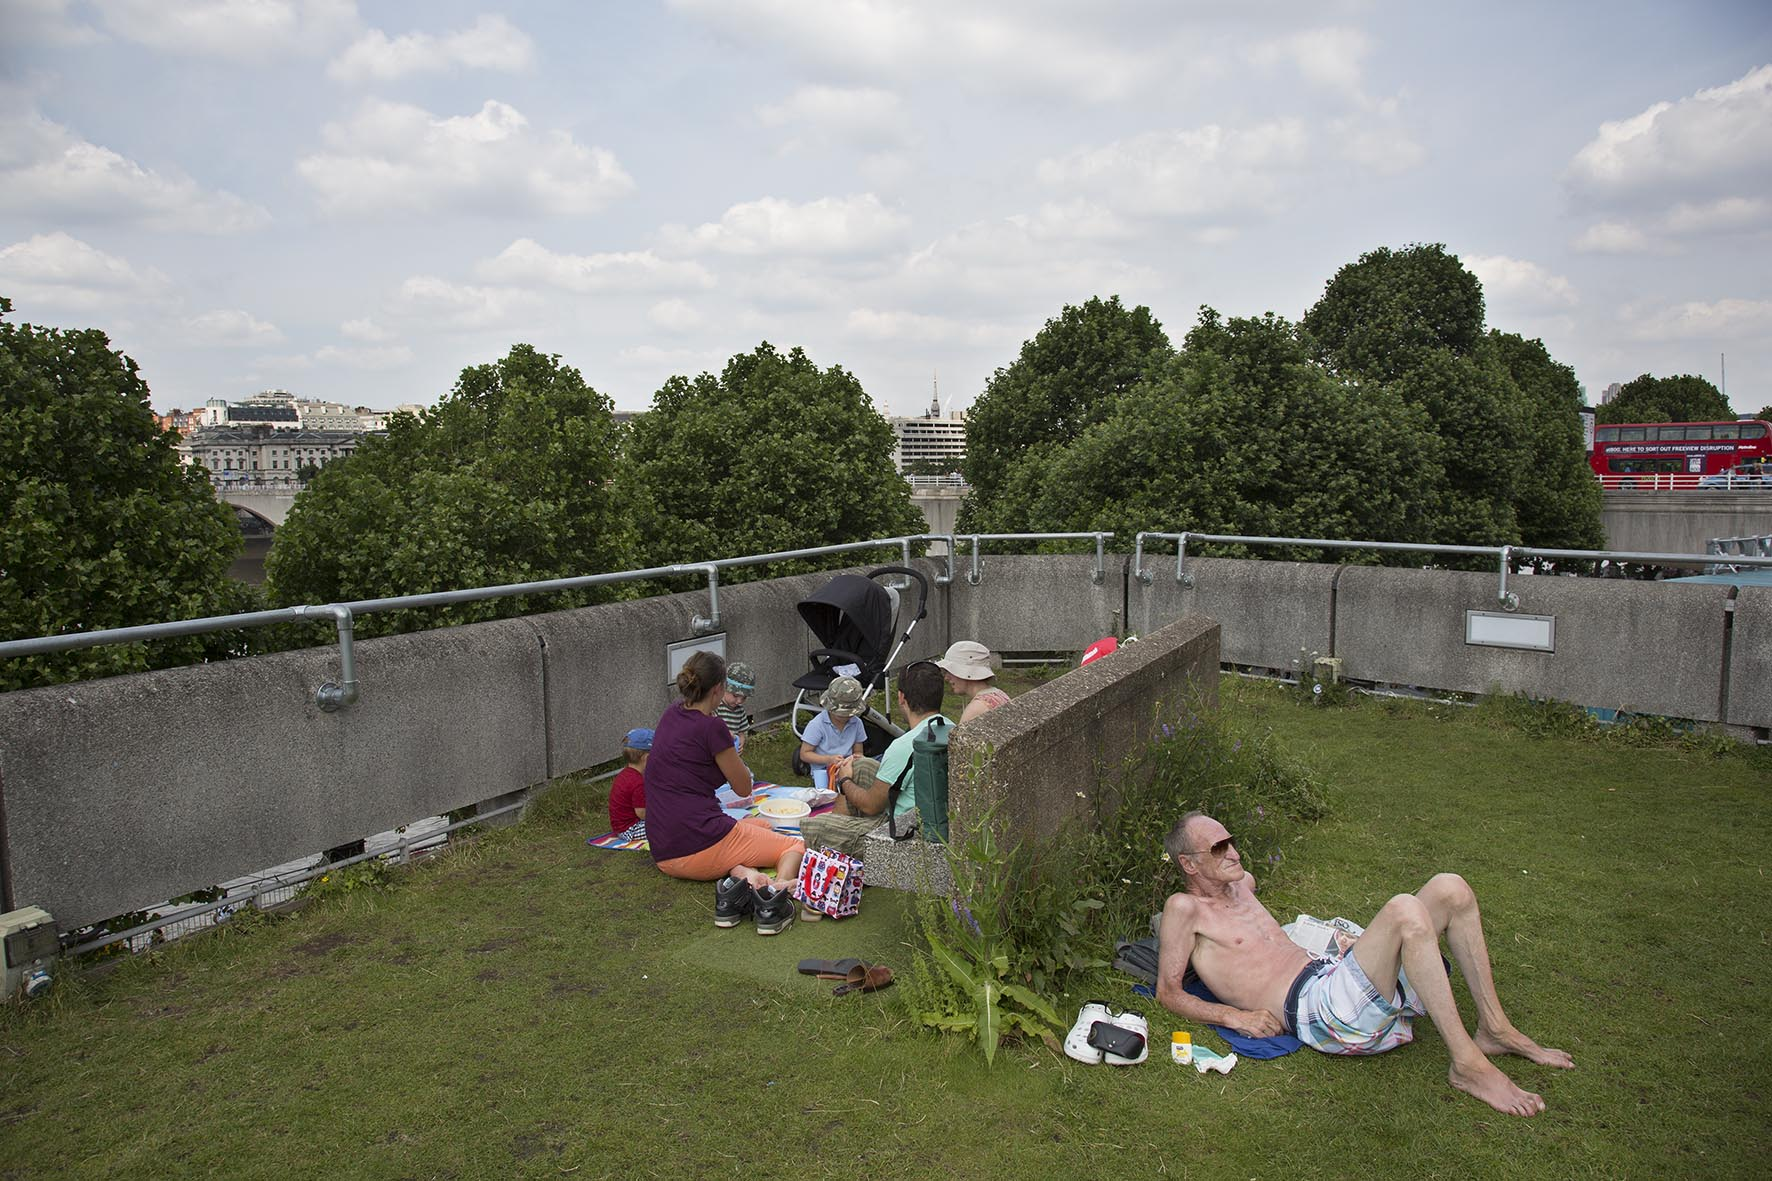 People relaxing up on the Queen Elizabeth Hall Roof Garden.